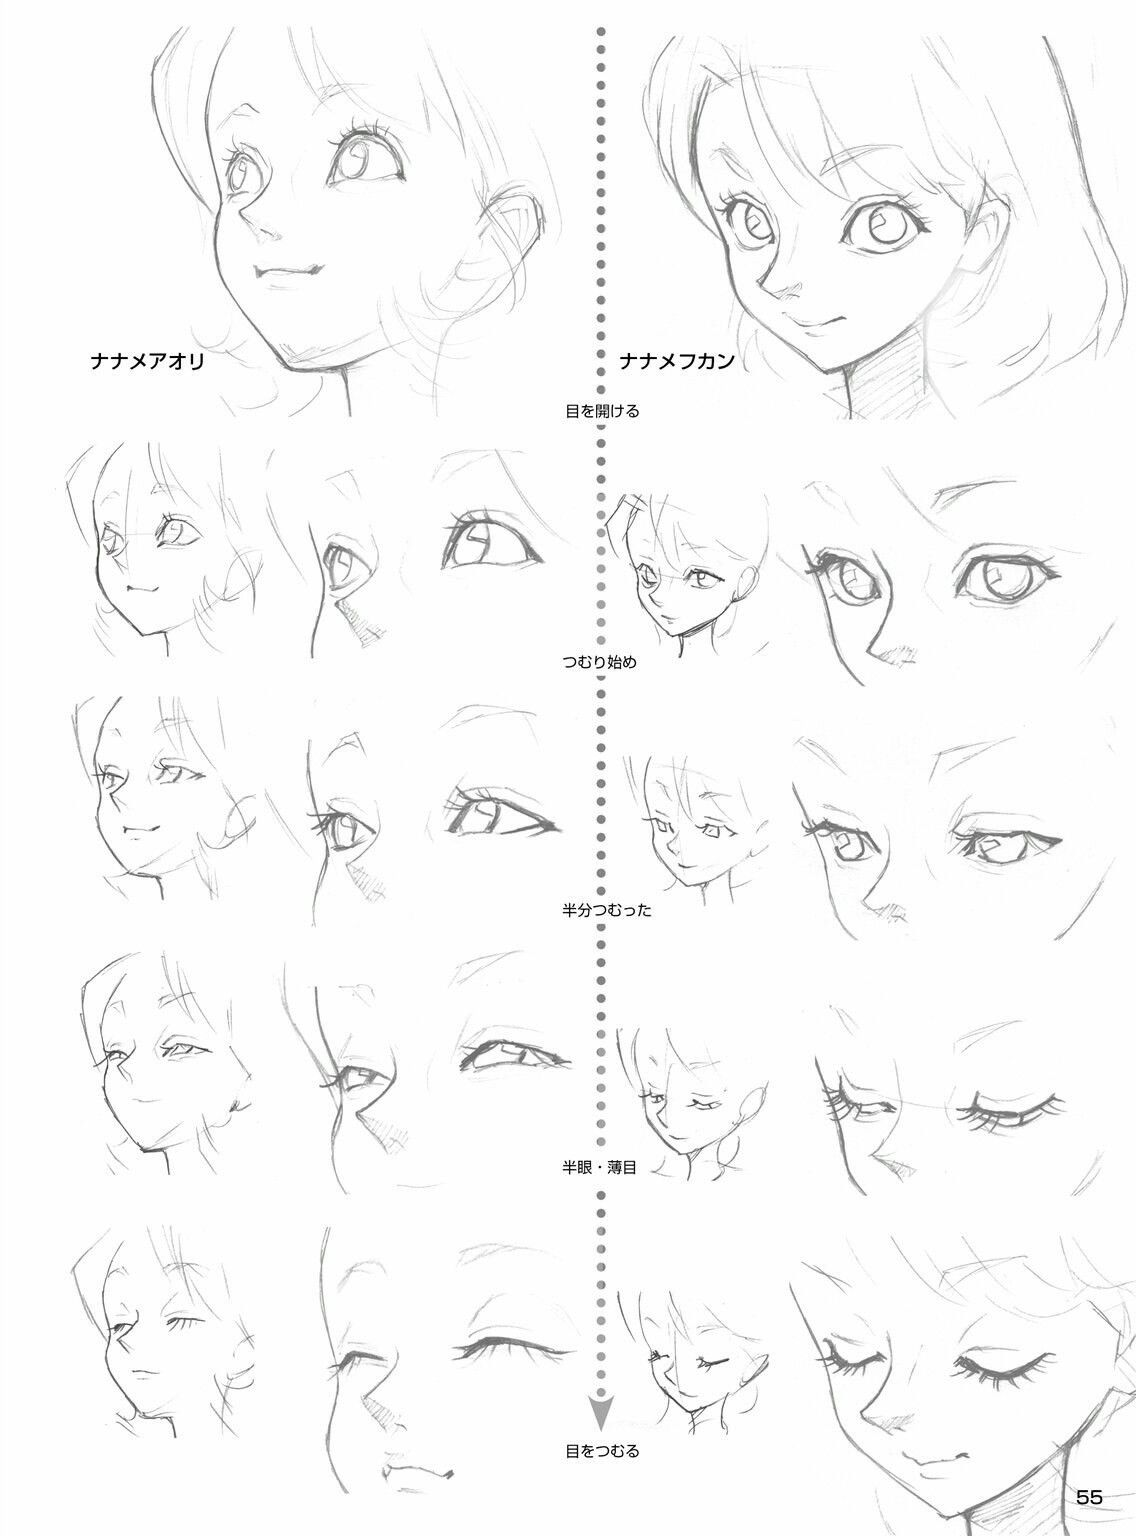 Eyes movement reference drawing eyes drawing people faces anatomy drawing manga drawing